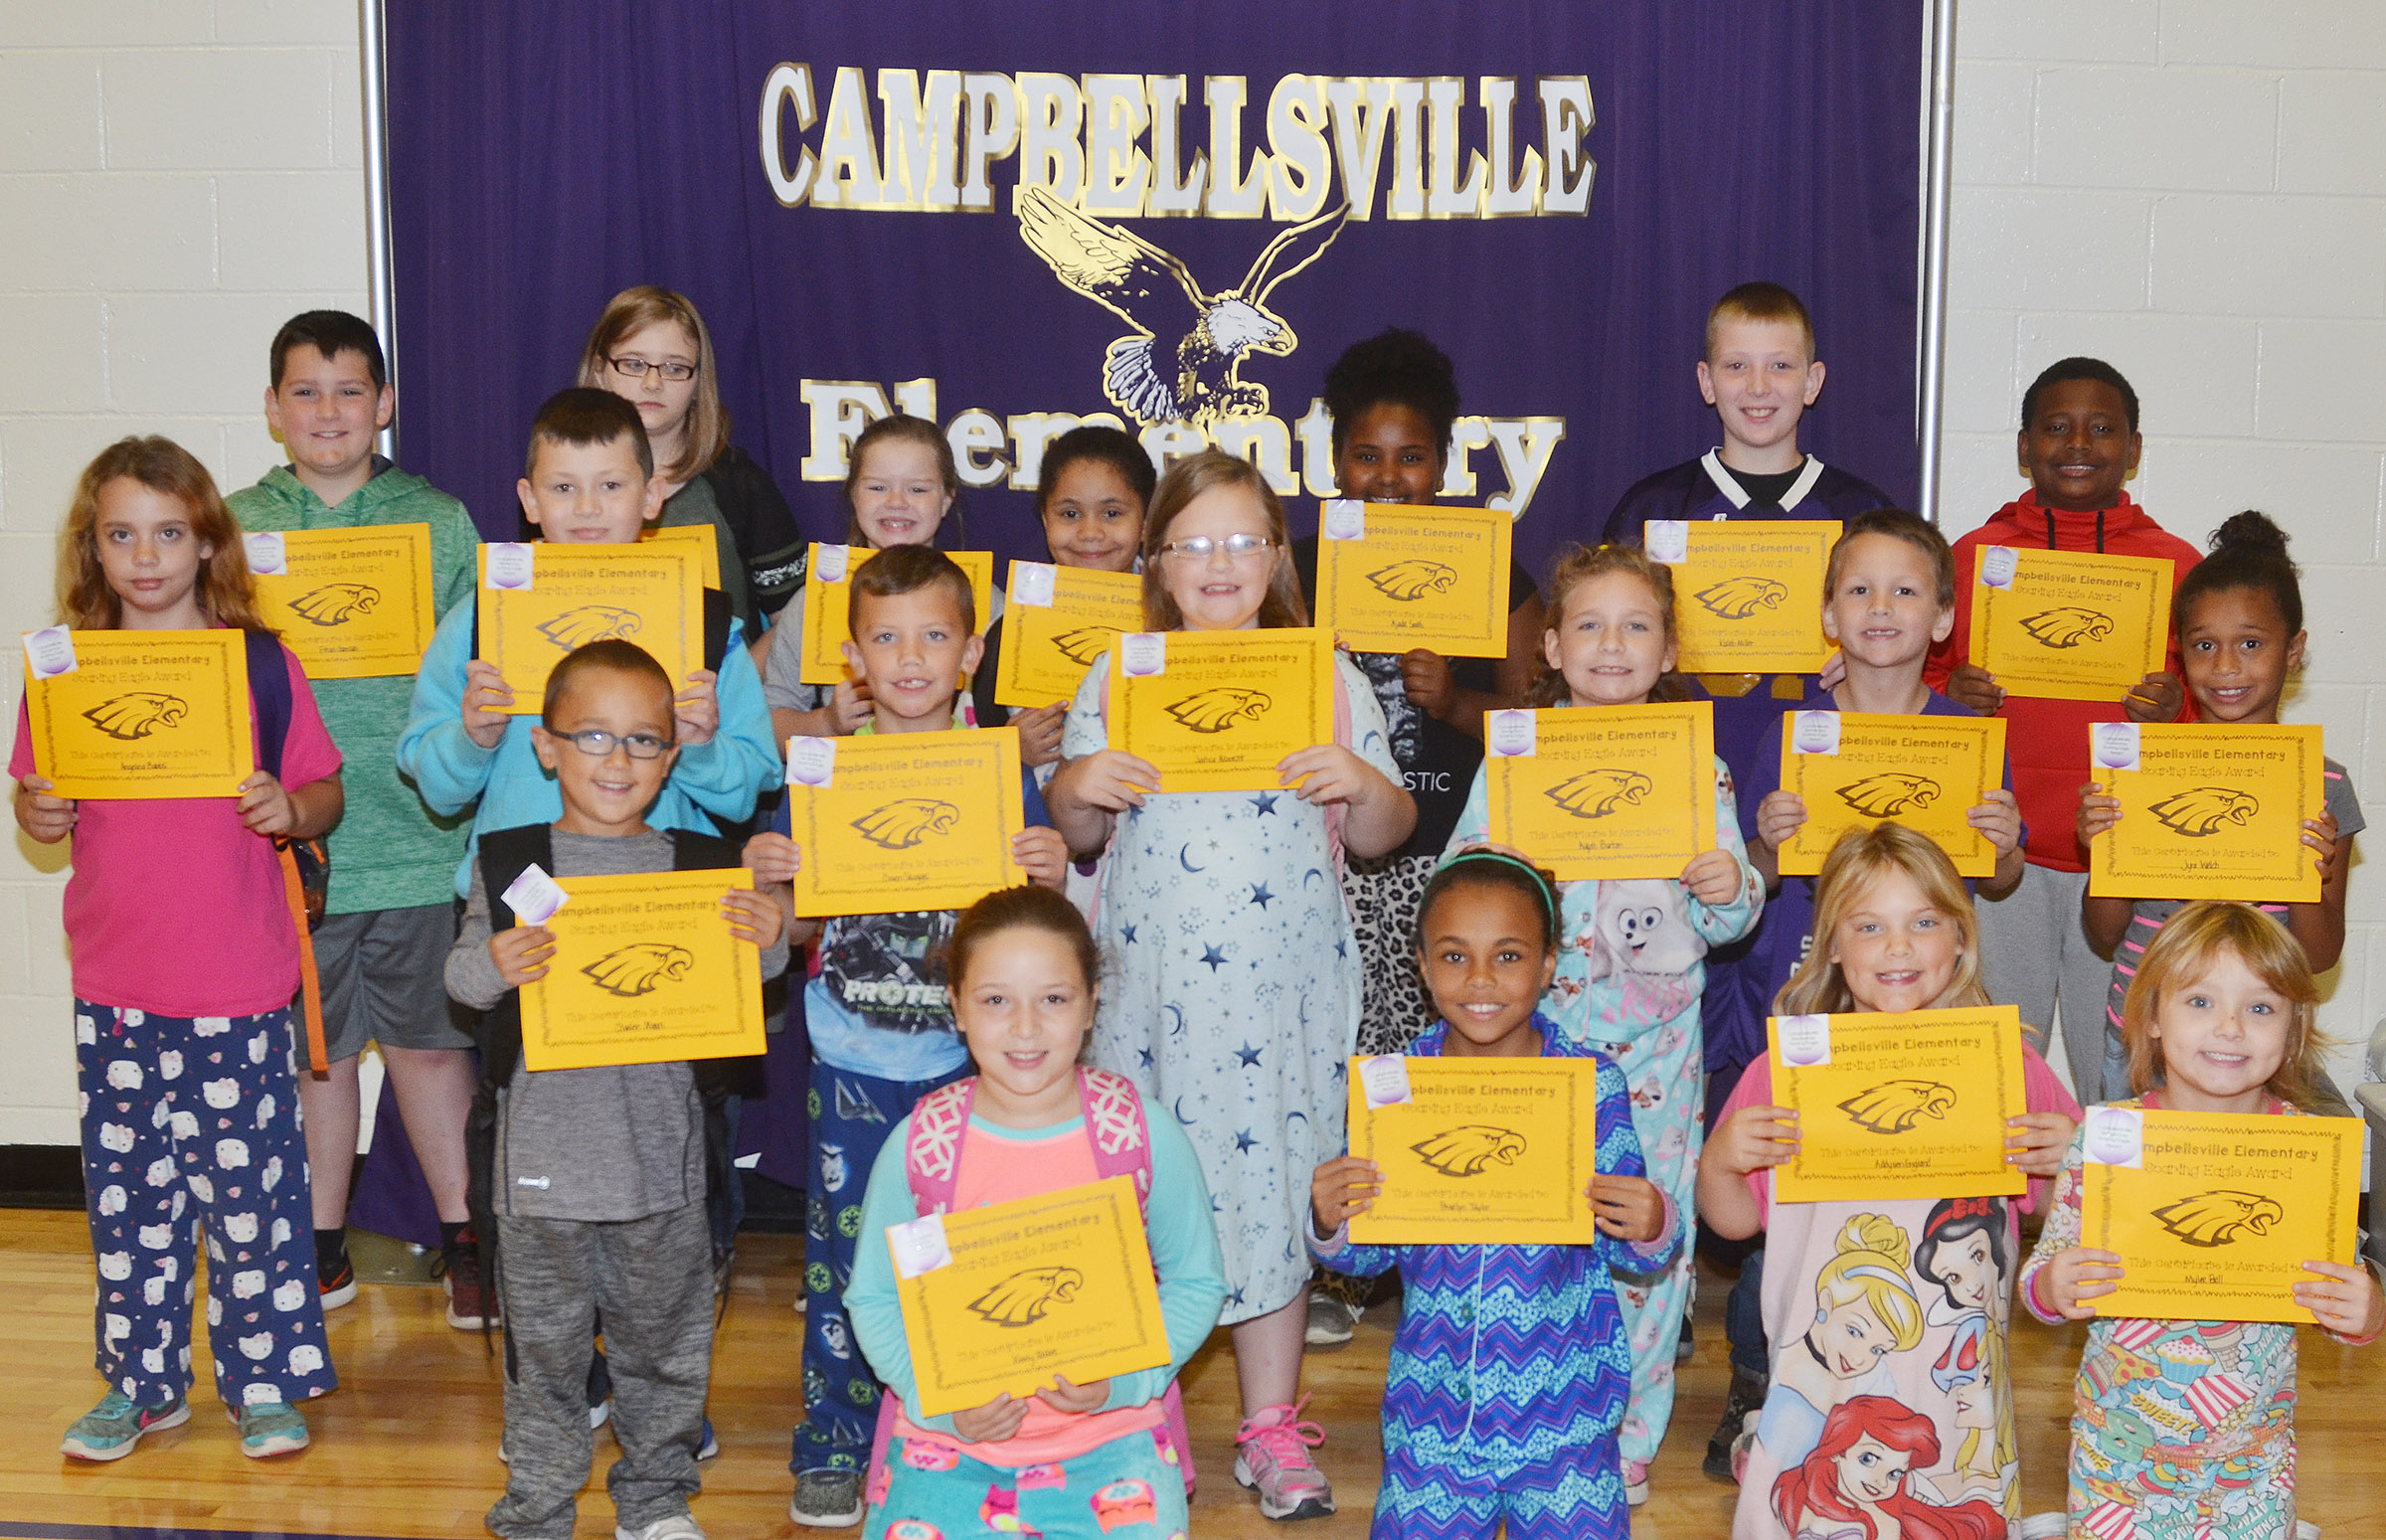 From left, front, are third-graders Keely Rakes and Braelyn Taylor and second-graders Addysen England and Mylee Bell. Second row, kindergartener Chanler Mann, second-graders Owen Skaggs and Justice Albrecht, fourth-grader Aliyah Burton and first-graders Justice Nelson and Jyra Welch. Third row, third-grader Angelina Babbs, fifth-graders Mason Fisher and Miley Hash, third-graders Alex Wilson and Ajada Smith and fifth-graders Kaleb Miller and KeKe Miller. Back, fourth-grader Ethan Garrison and fifth-grader Destiny Lane. Absent from the photo are kindergartener Payton Caldwell and first-grader Kylei Thompson.